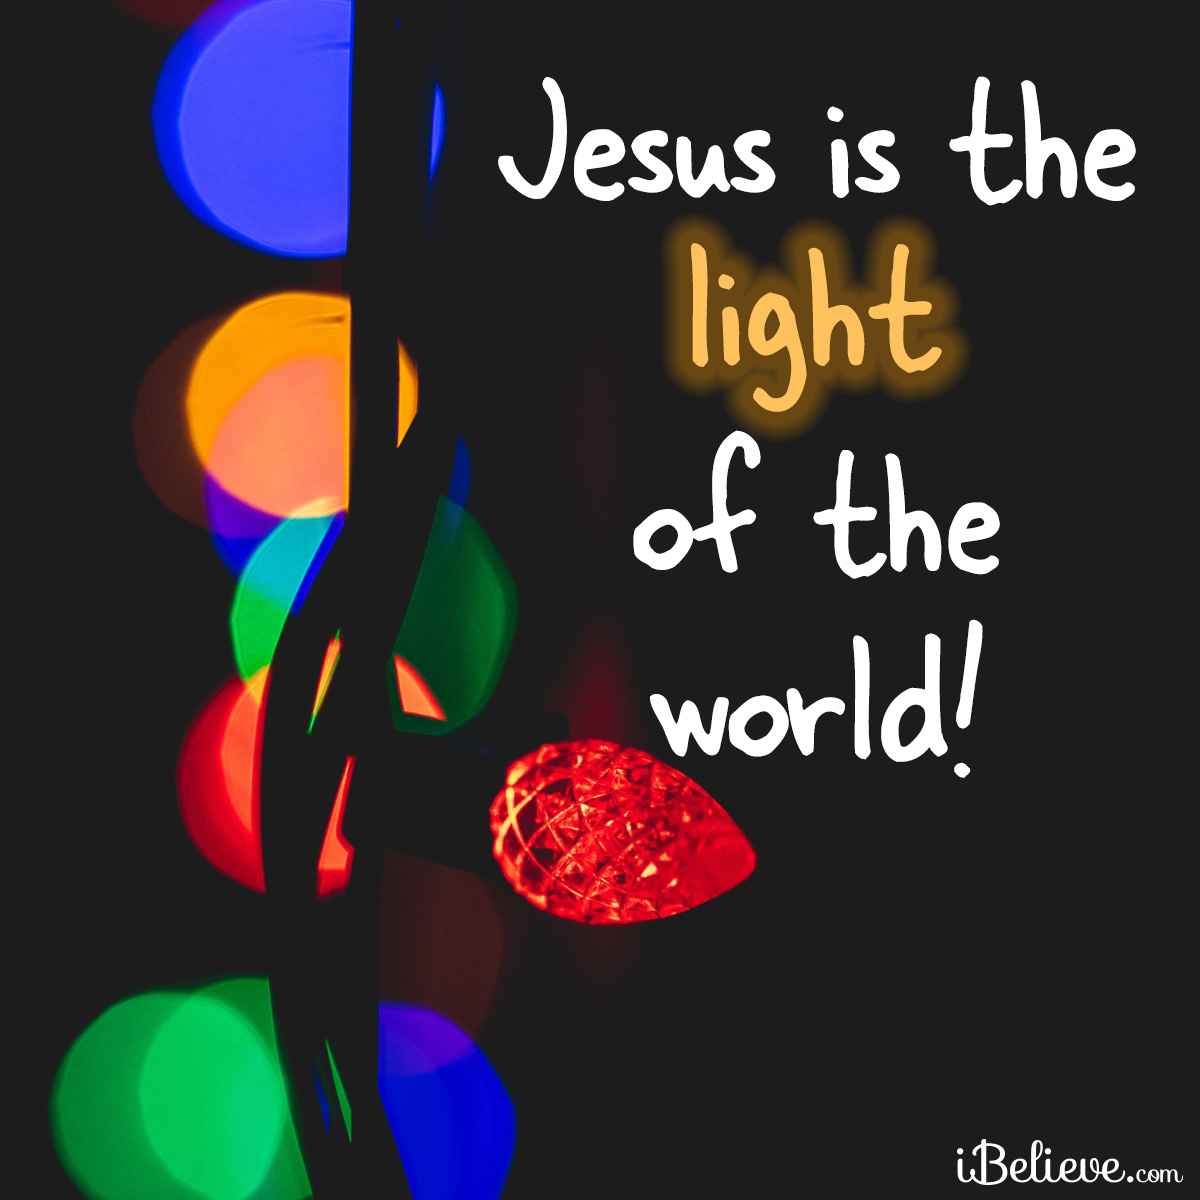 Light of the World, inspirational image